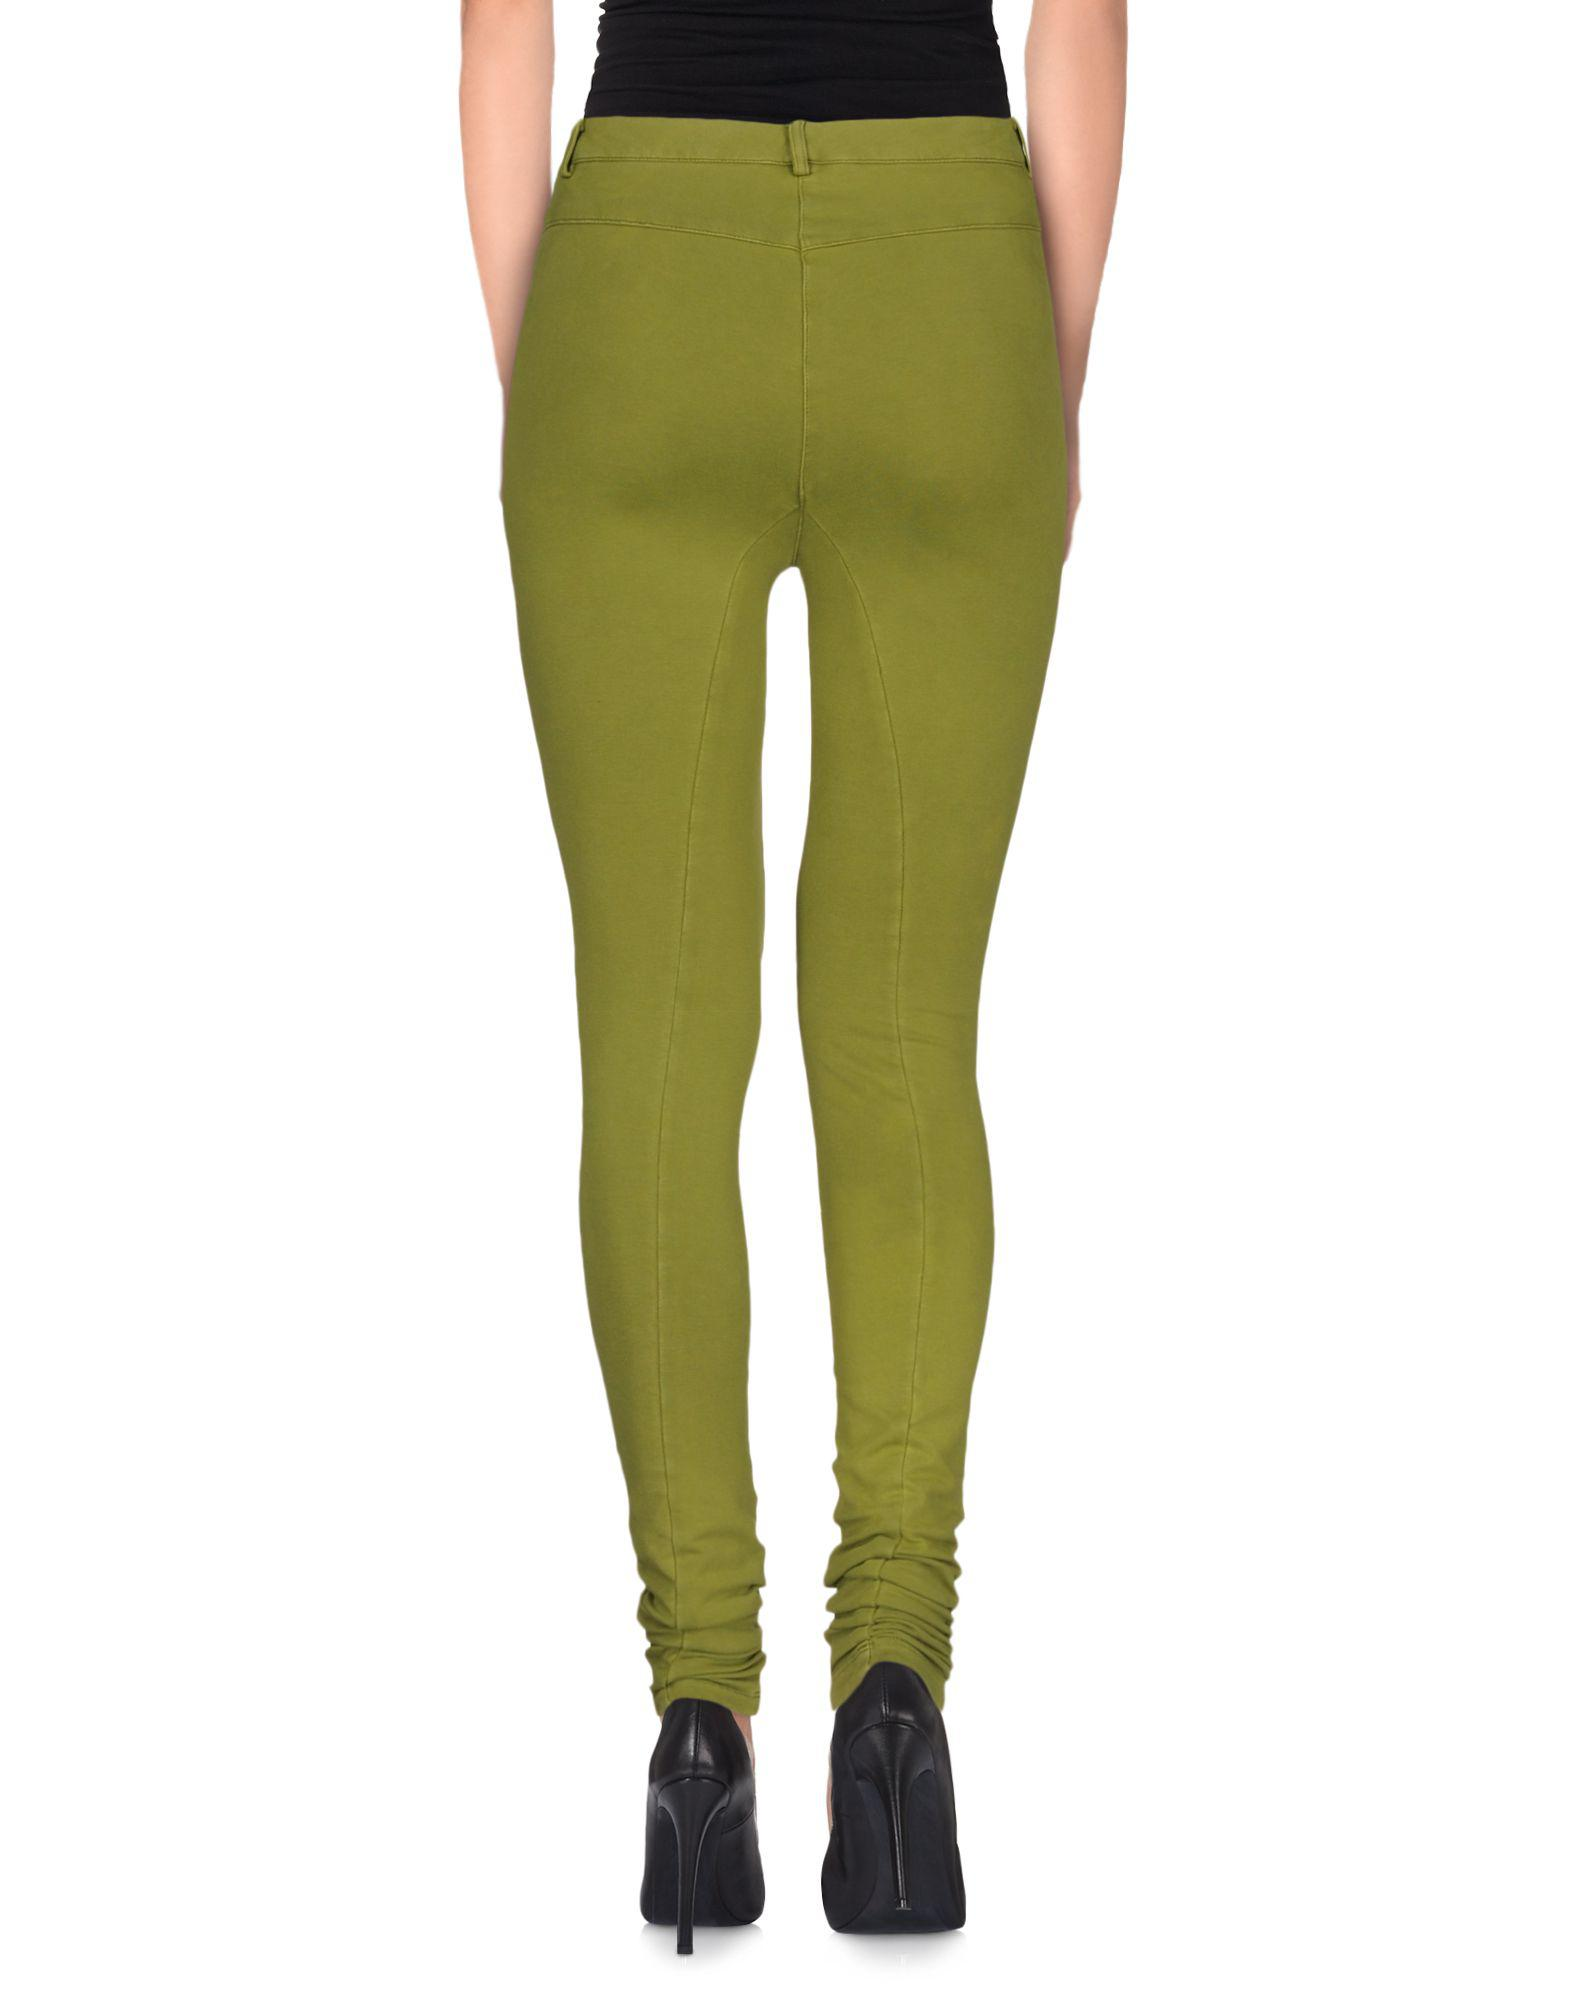 TROUSERS - Casual trousers Peperosa For Sale Online Store Lowest Price Sale Online Buy Cheap Sale LF5uOkns